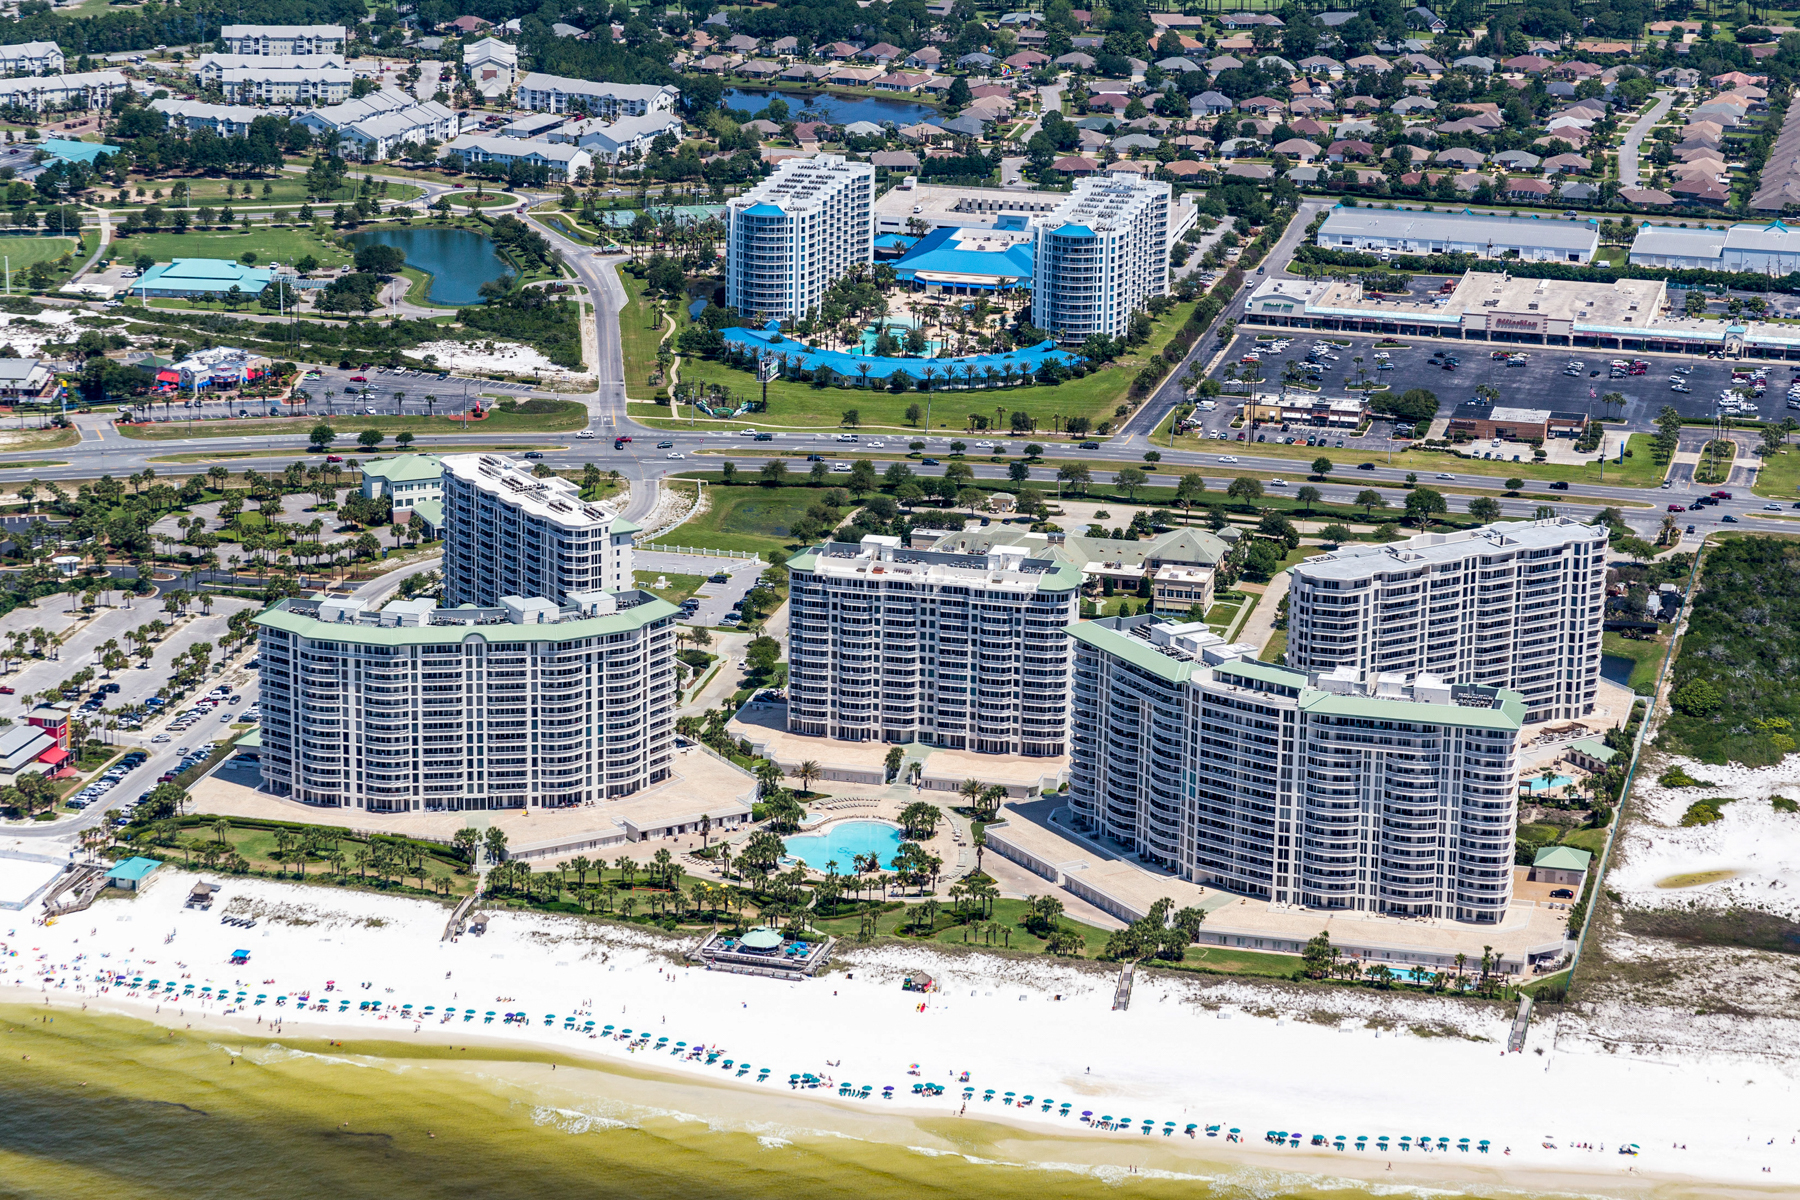 Condominium for Sale at Panoramic Views of the Gulf of Mexico from Penthouse Condo 15100 Emerald Coast Parkway Unit PH5, Destin, Florida, 32541 United States